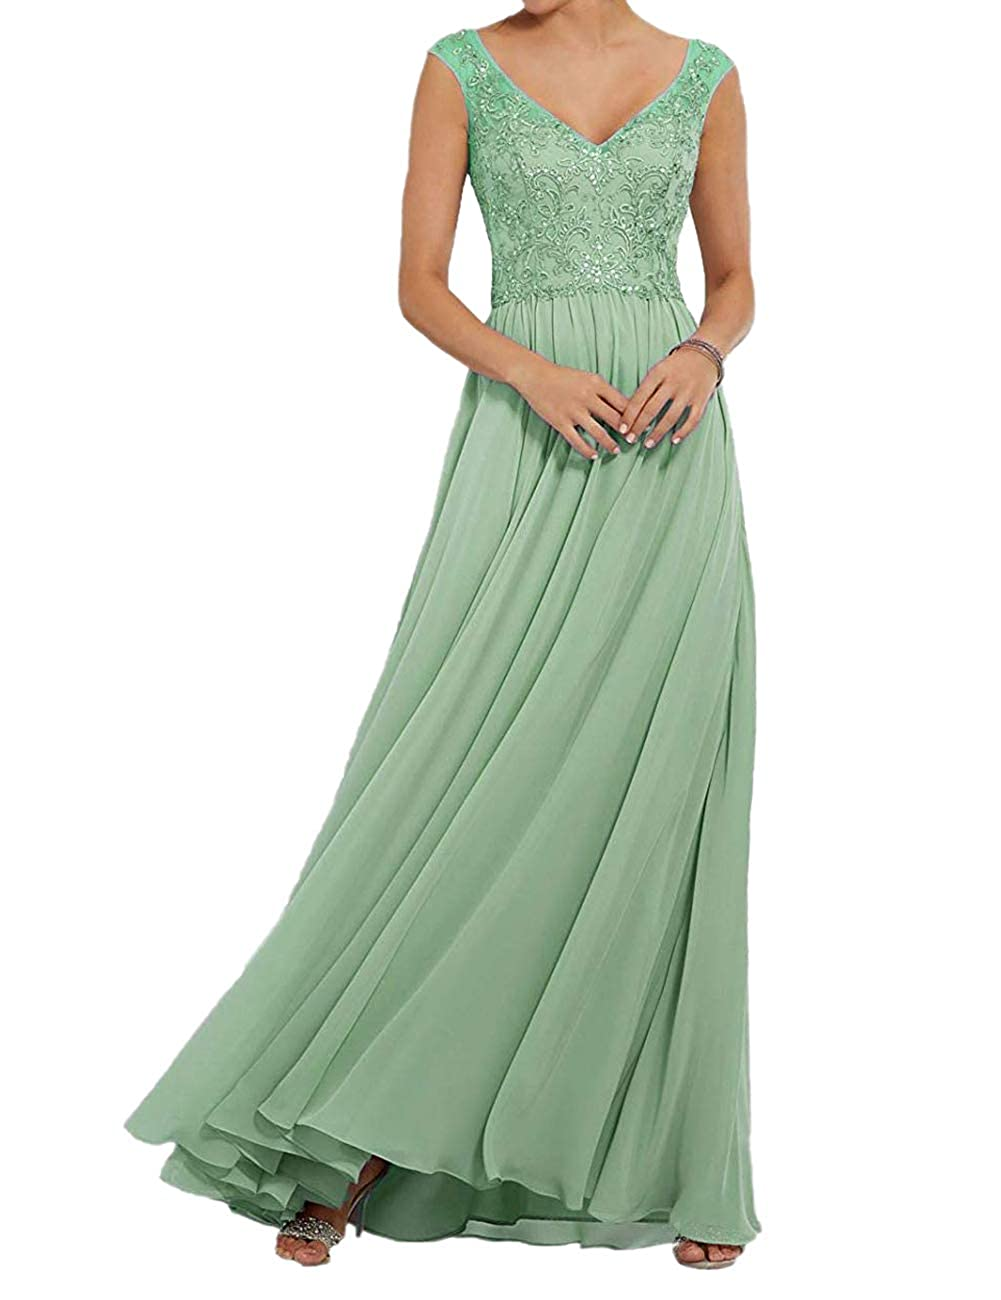 Glass Green ASBridal Prom Dresses Long Sequin Quinceanera Dres Backless Formal Evening Gown with Sash